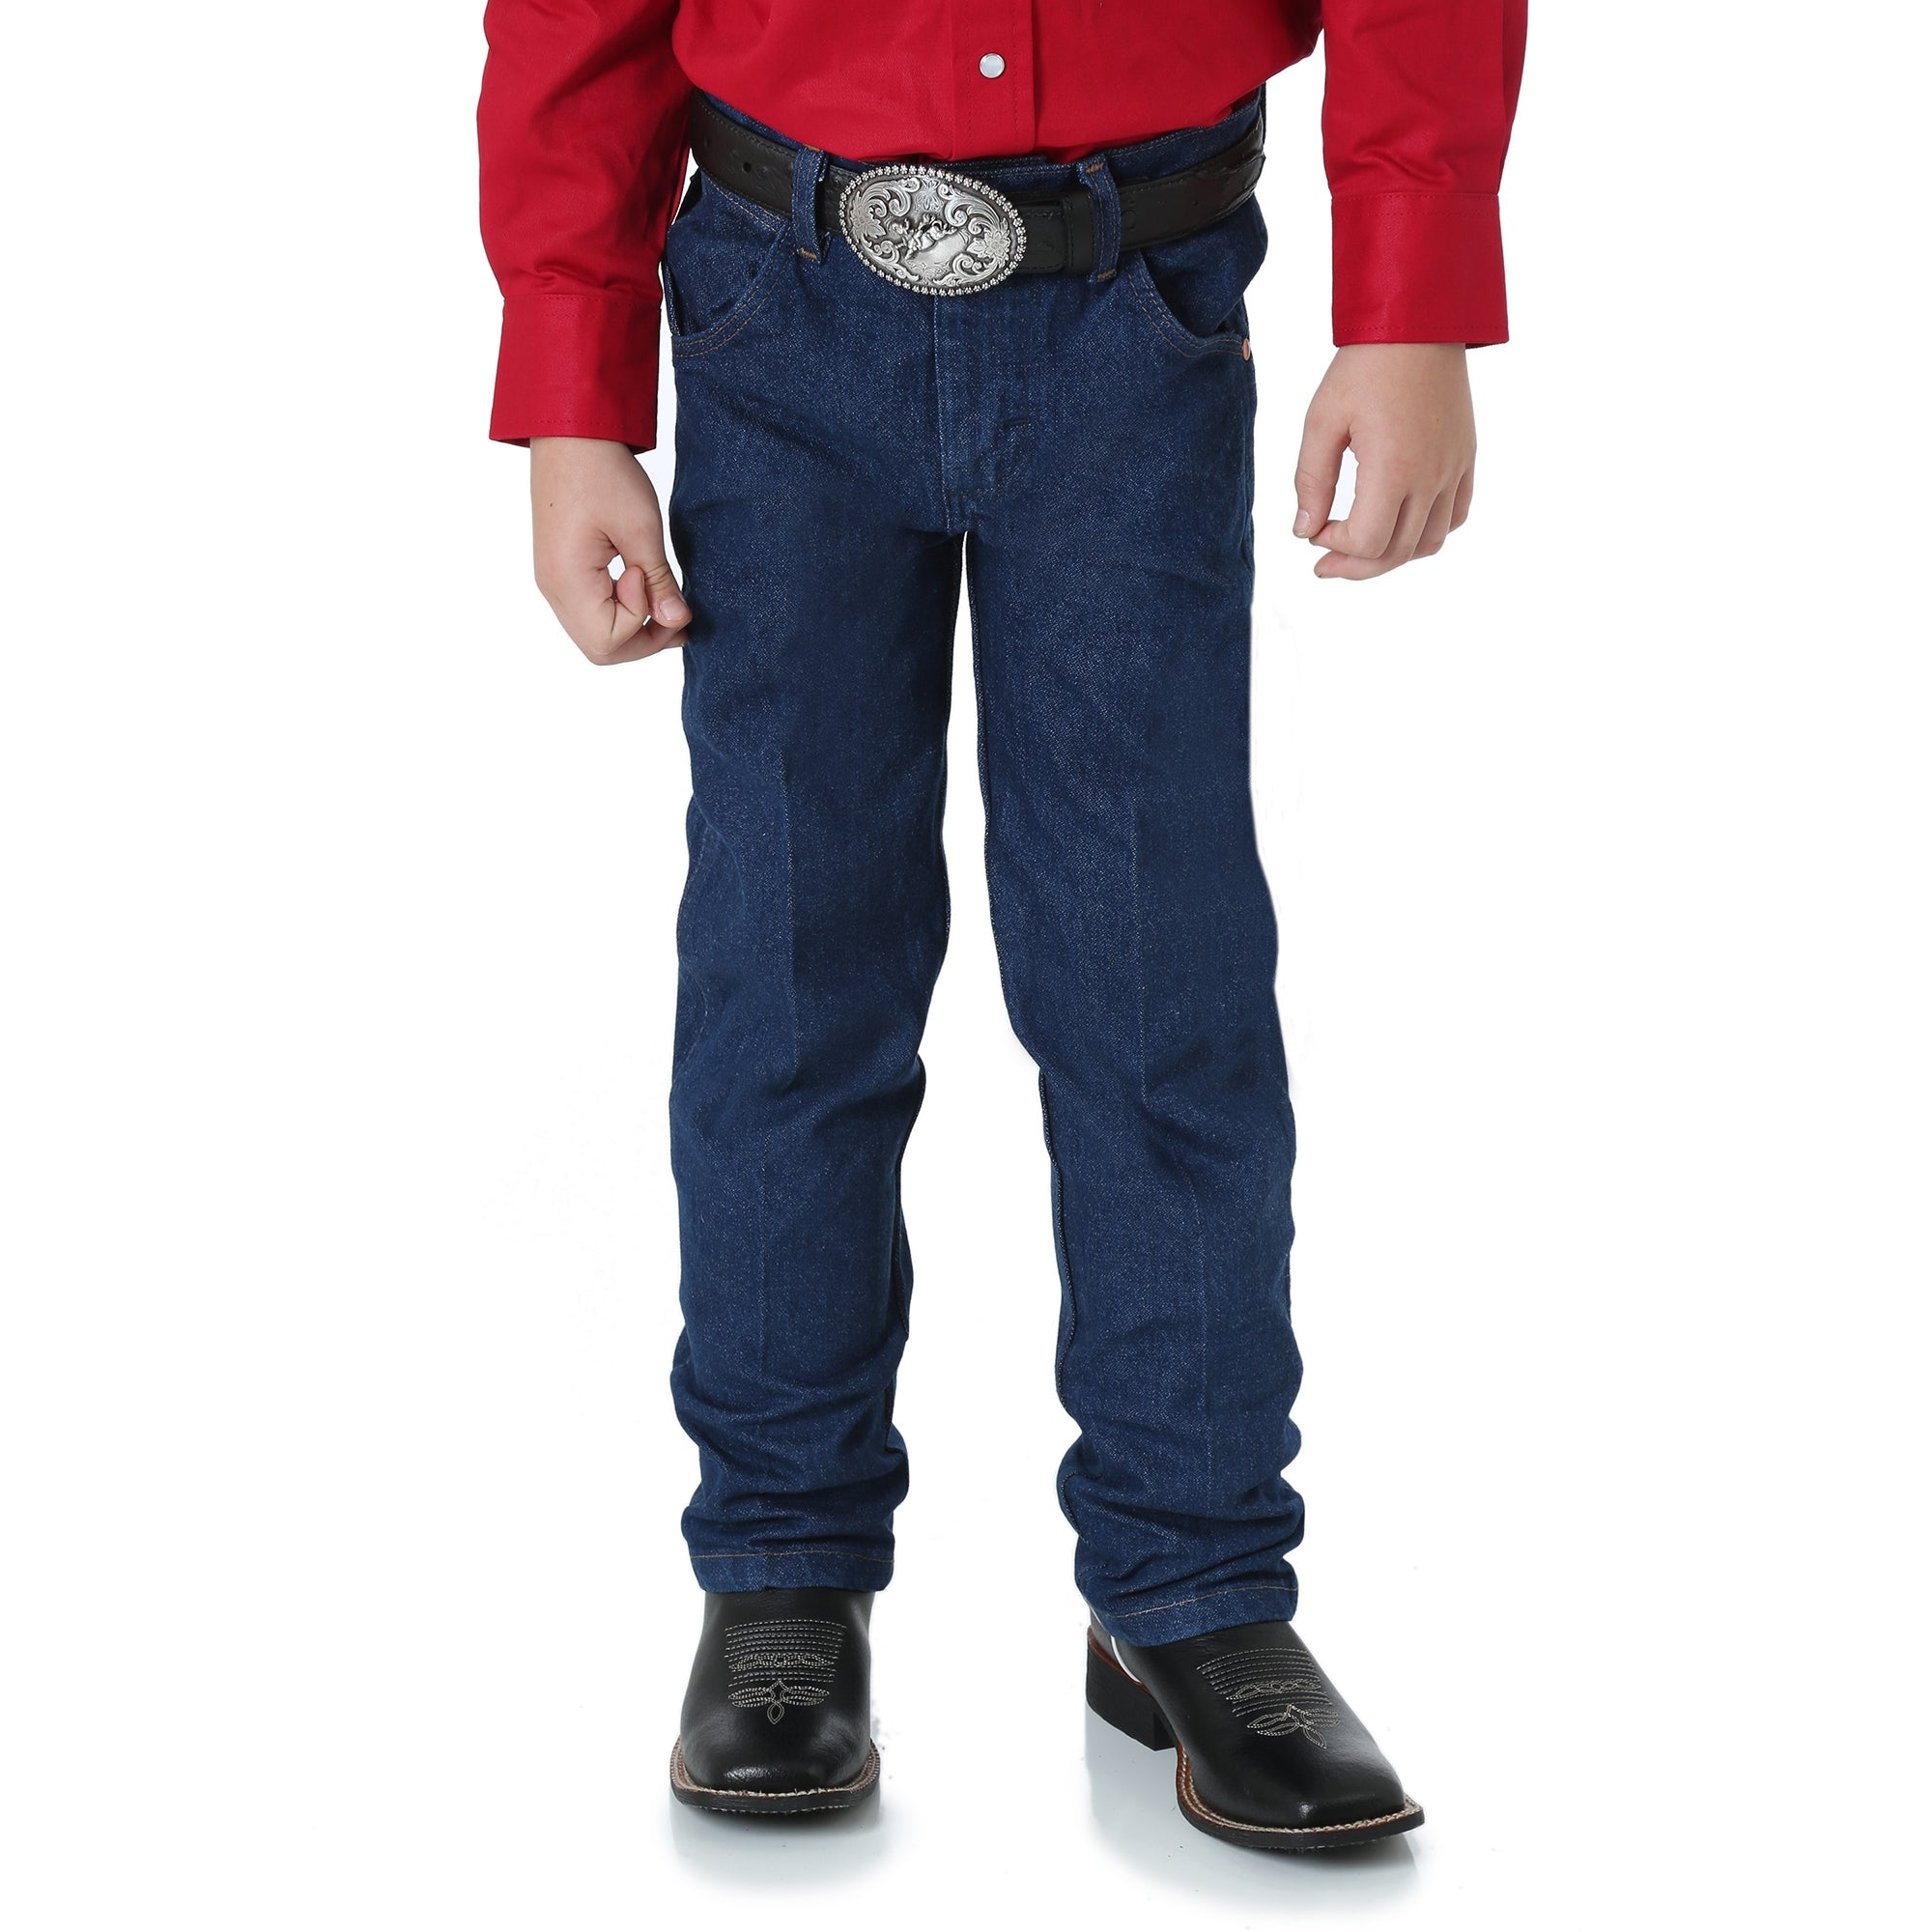 Boy's Wrangler Cowboy Cut Original Fit Jean #13MWZJP (1T-7)